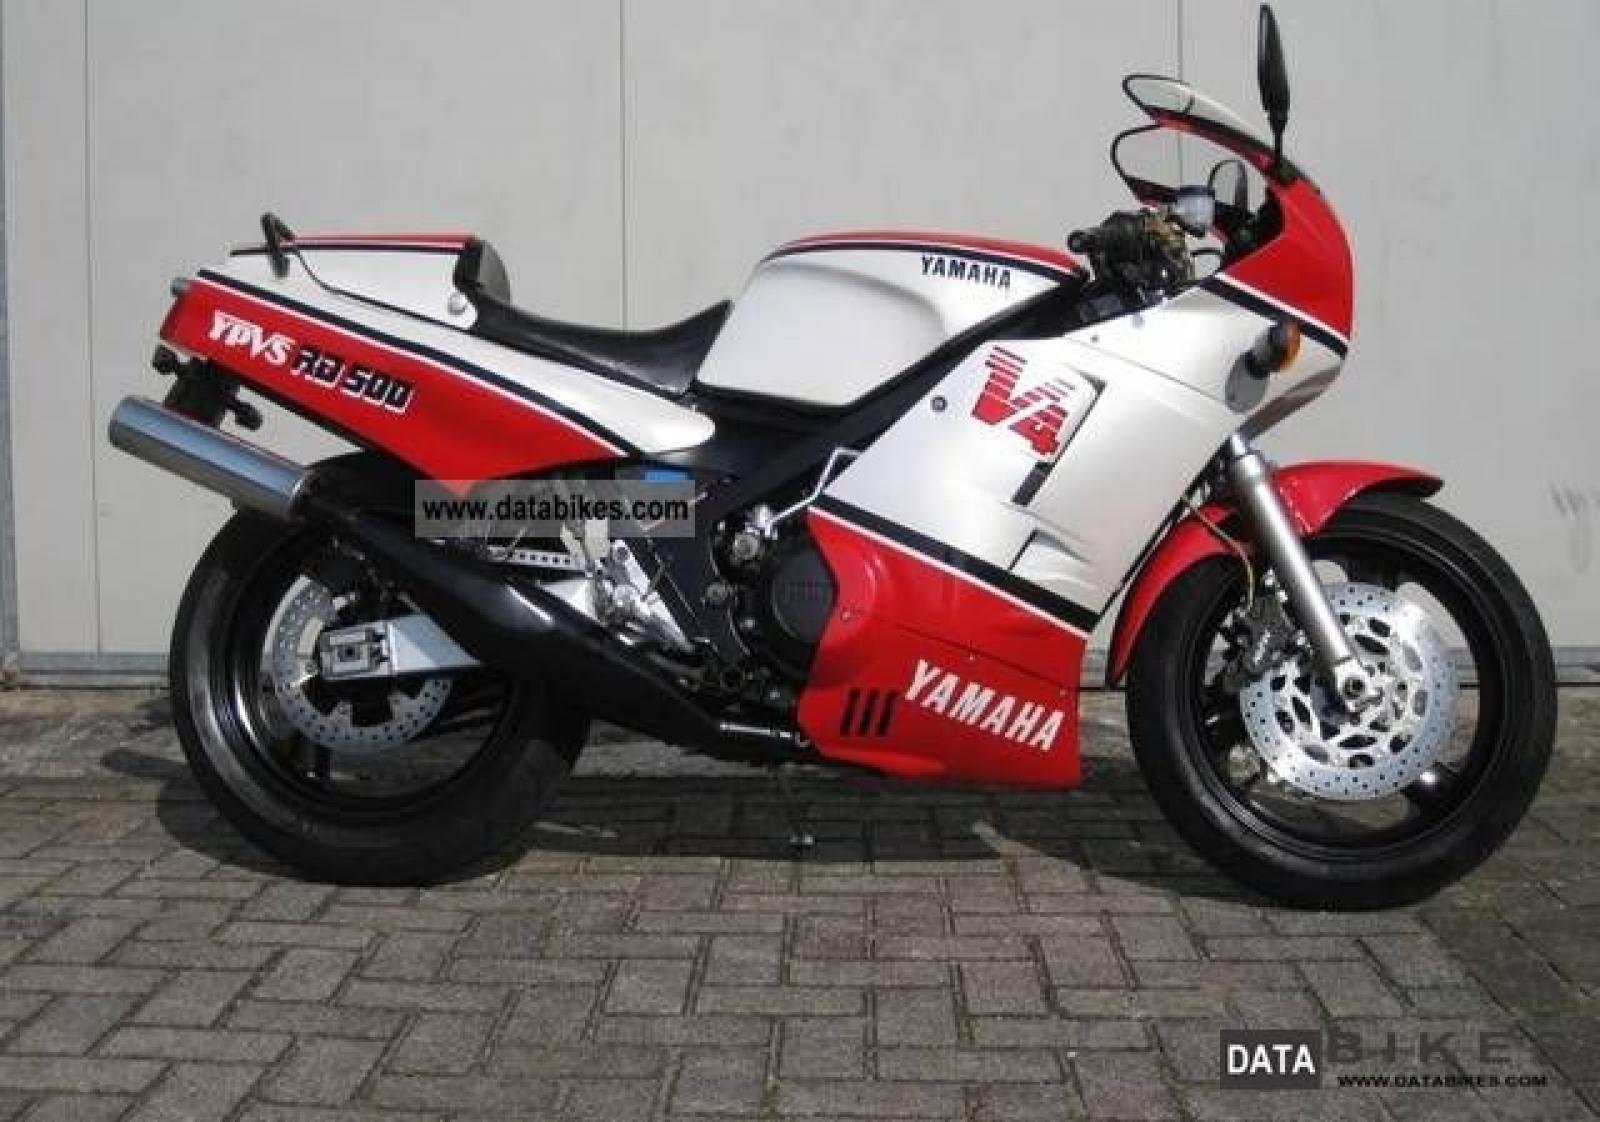 Yamaha RD 500 LC 1985 images #90044